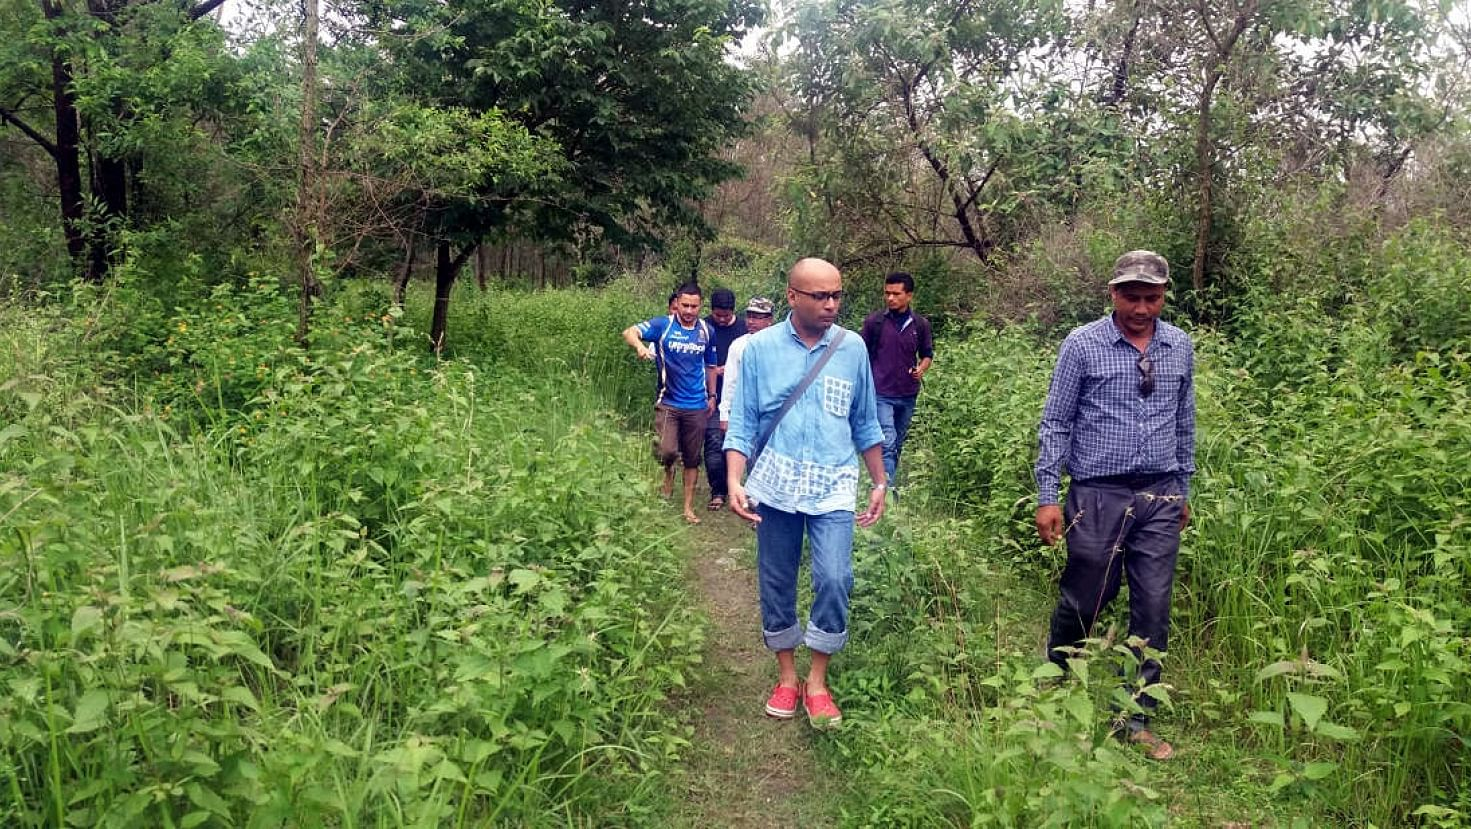 Joint Forest Management Committee of Bhairabkhunda Reserve Forest taking visitors on a tour. (Source: Balipara Foundation)